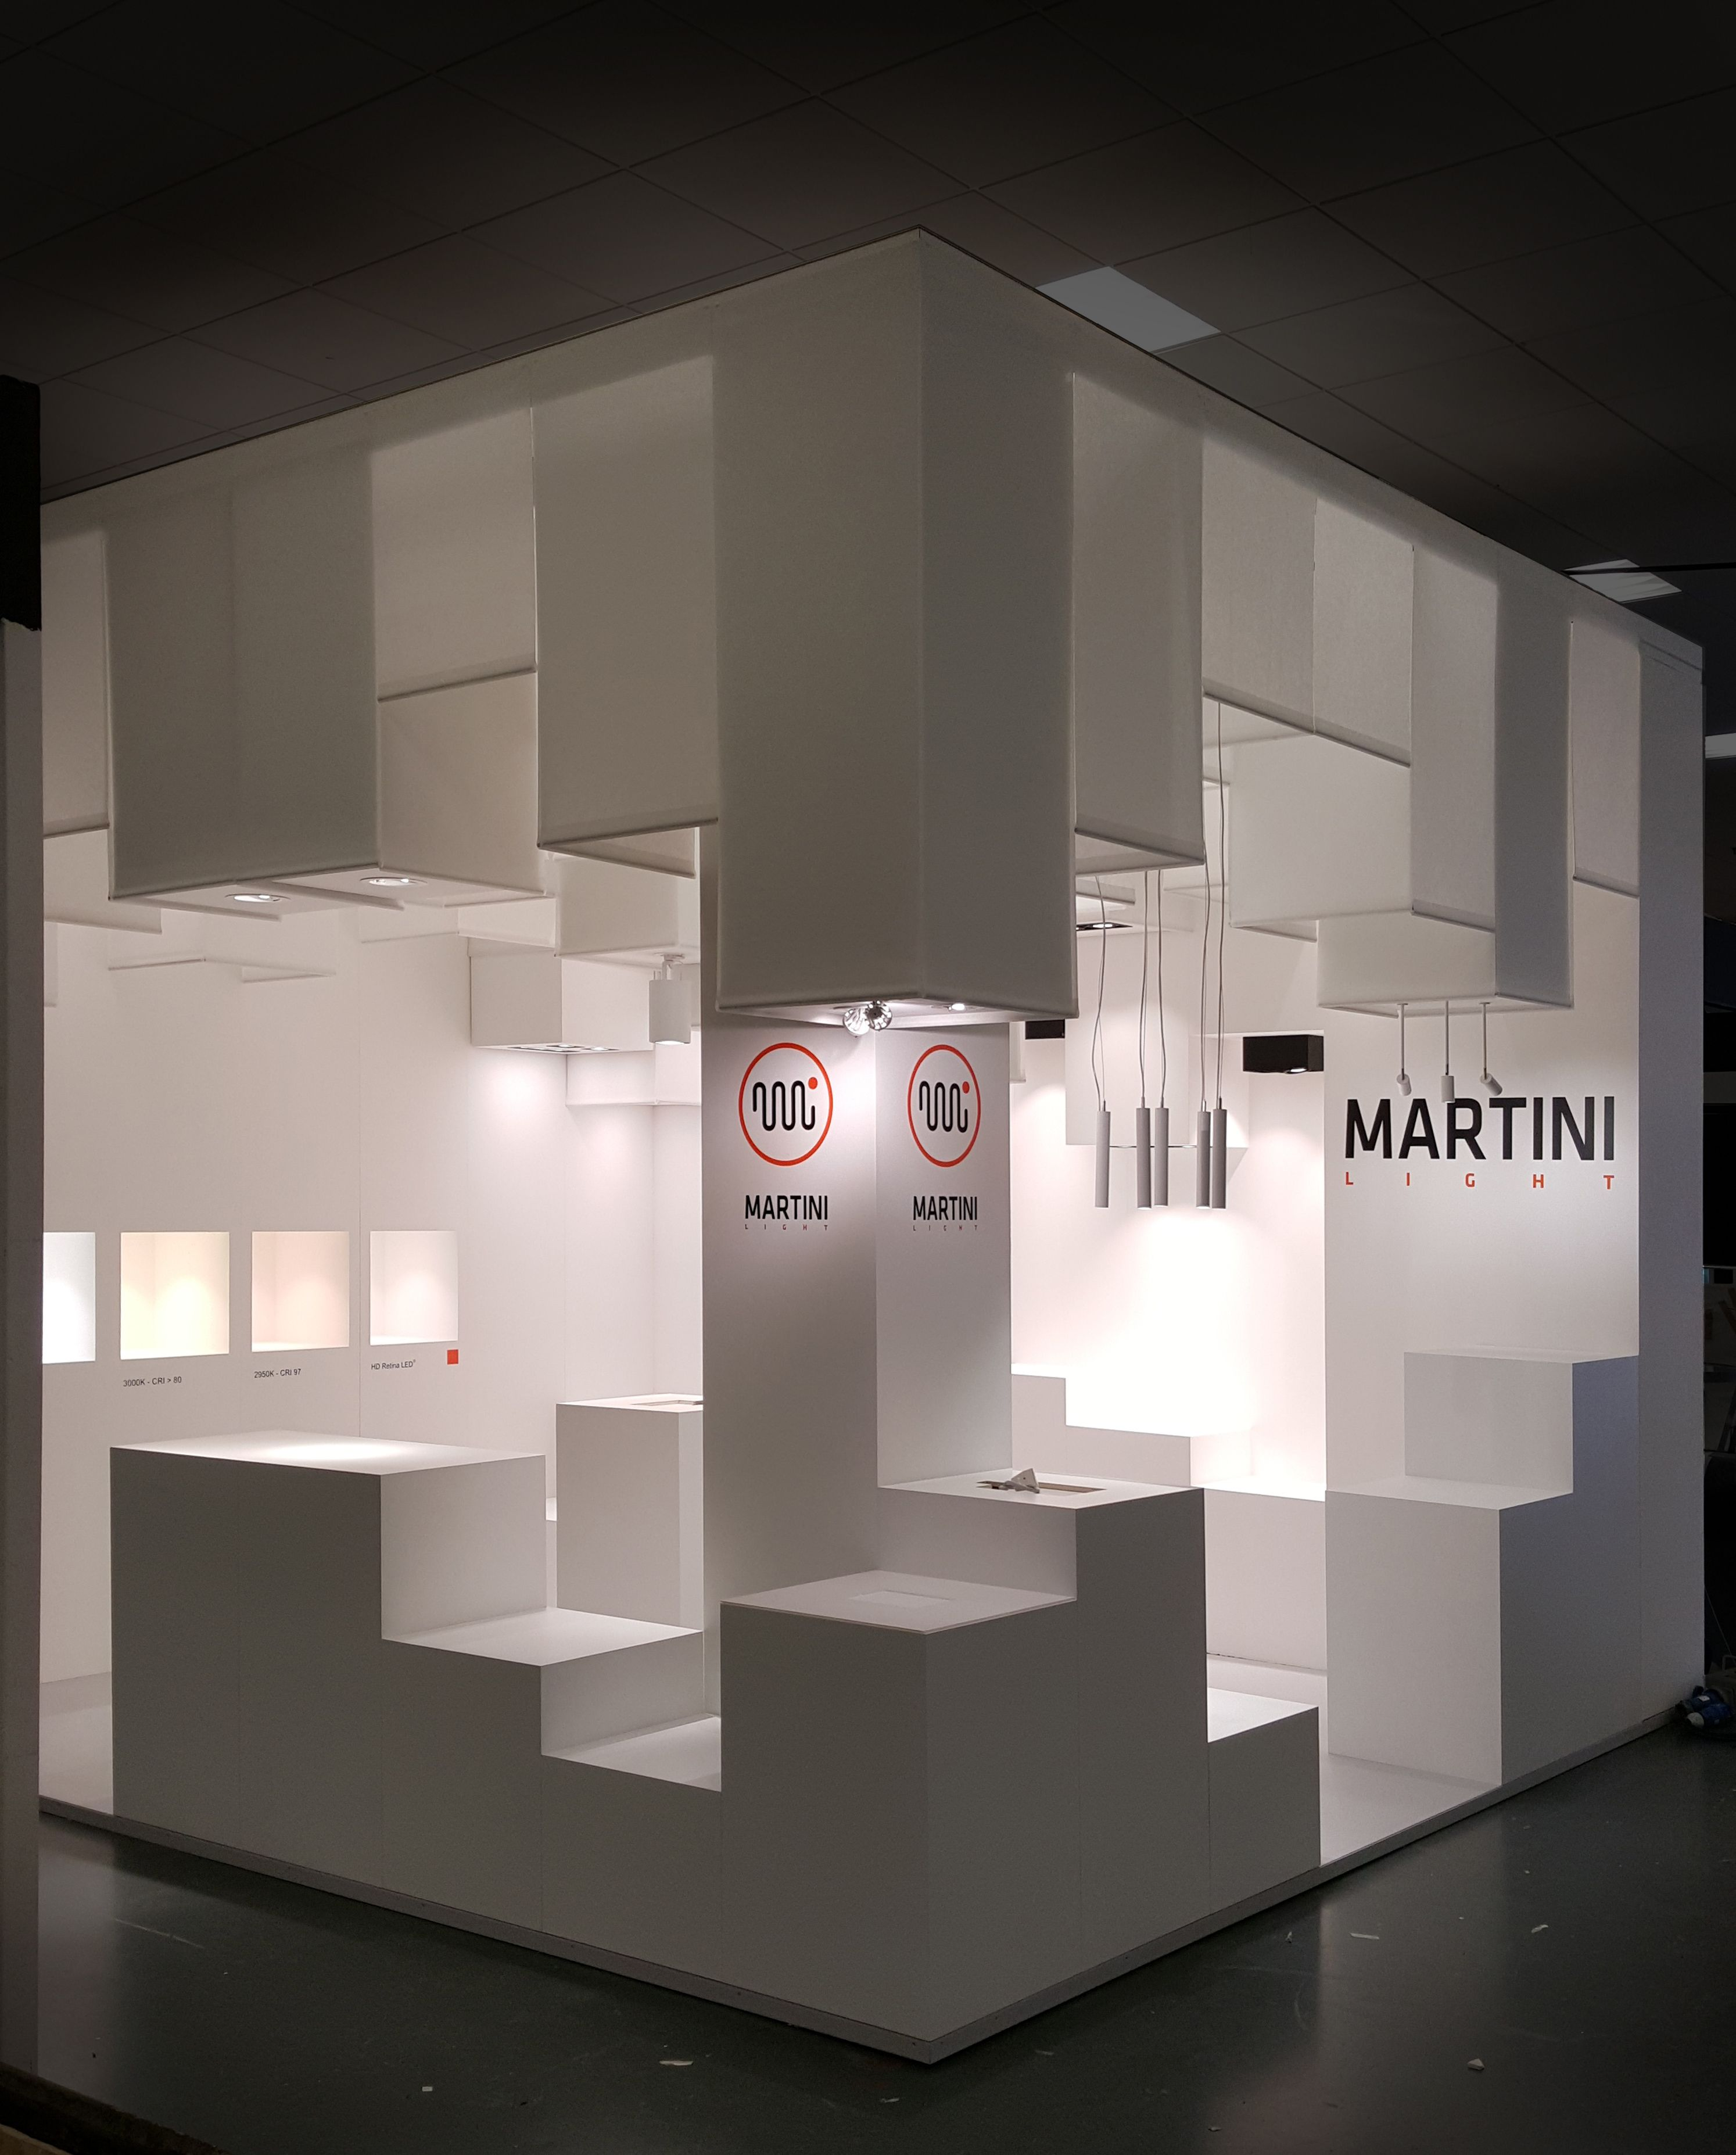 The Best Exhibition Stand Design : The best of retail design expo martinilight